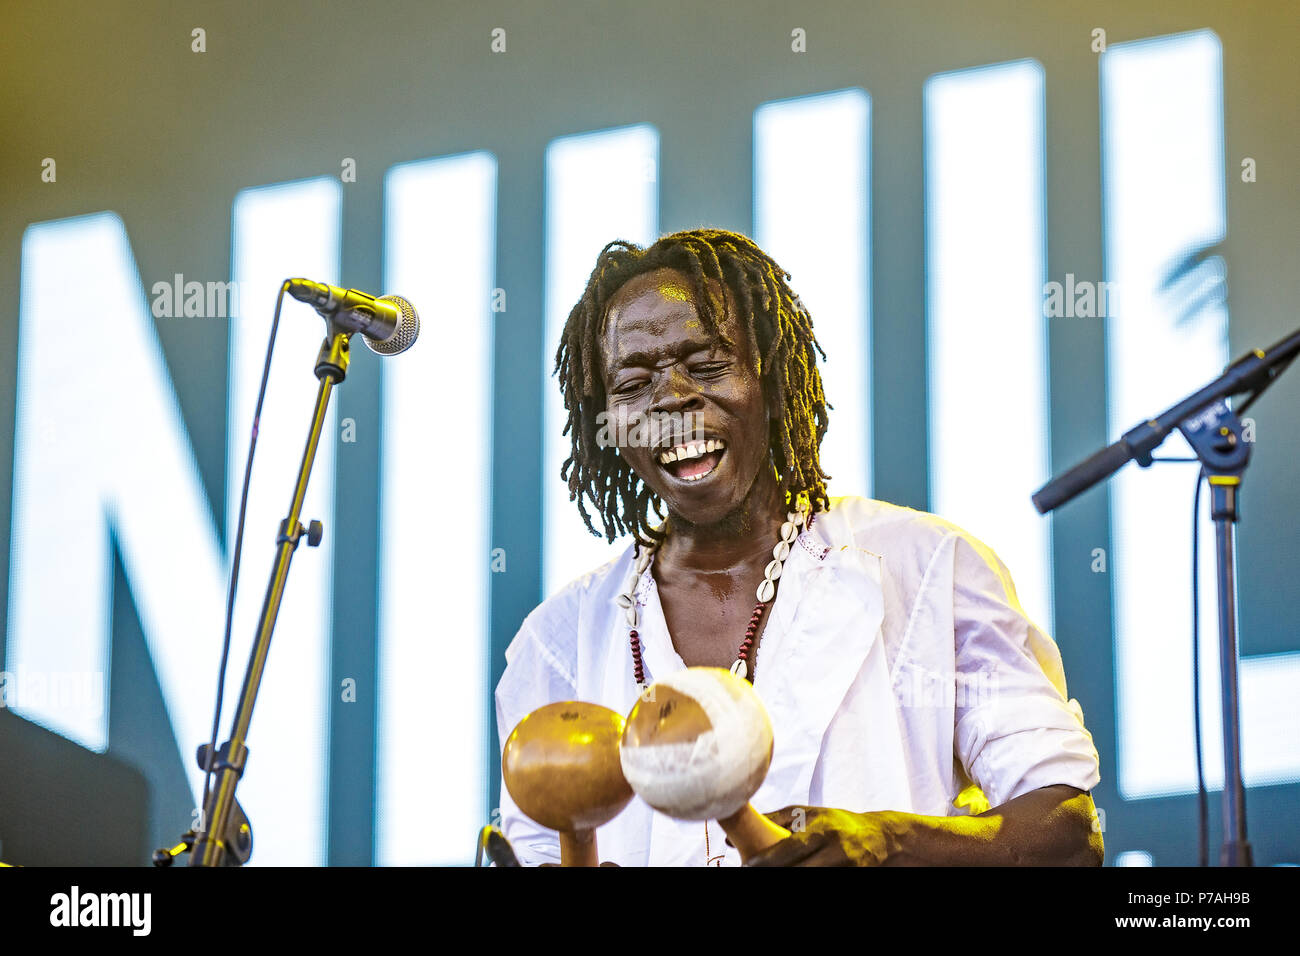 Denmark, Roskilde - July 4, 2018. The international music project Nihiloxica performs a live concert during the Danish music festival Roskilde Festival 2018. Nihiloxica consists of Niloteca Drum Ensemble from Uganda and British artists Spooky J and PQ. (Photo credit: Gonzales Photo - Peter Troest). Credit: Gonzales Photo/Alamy Live News - Stock Image